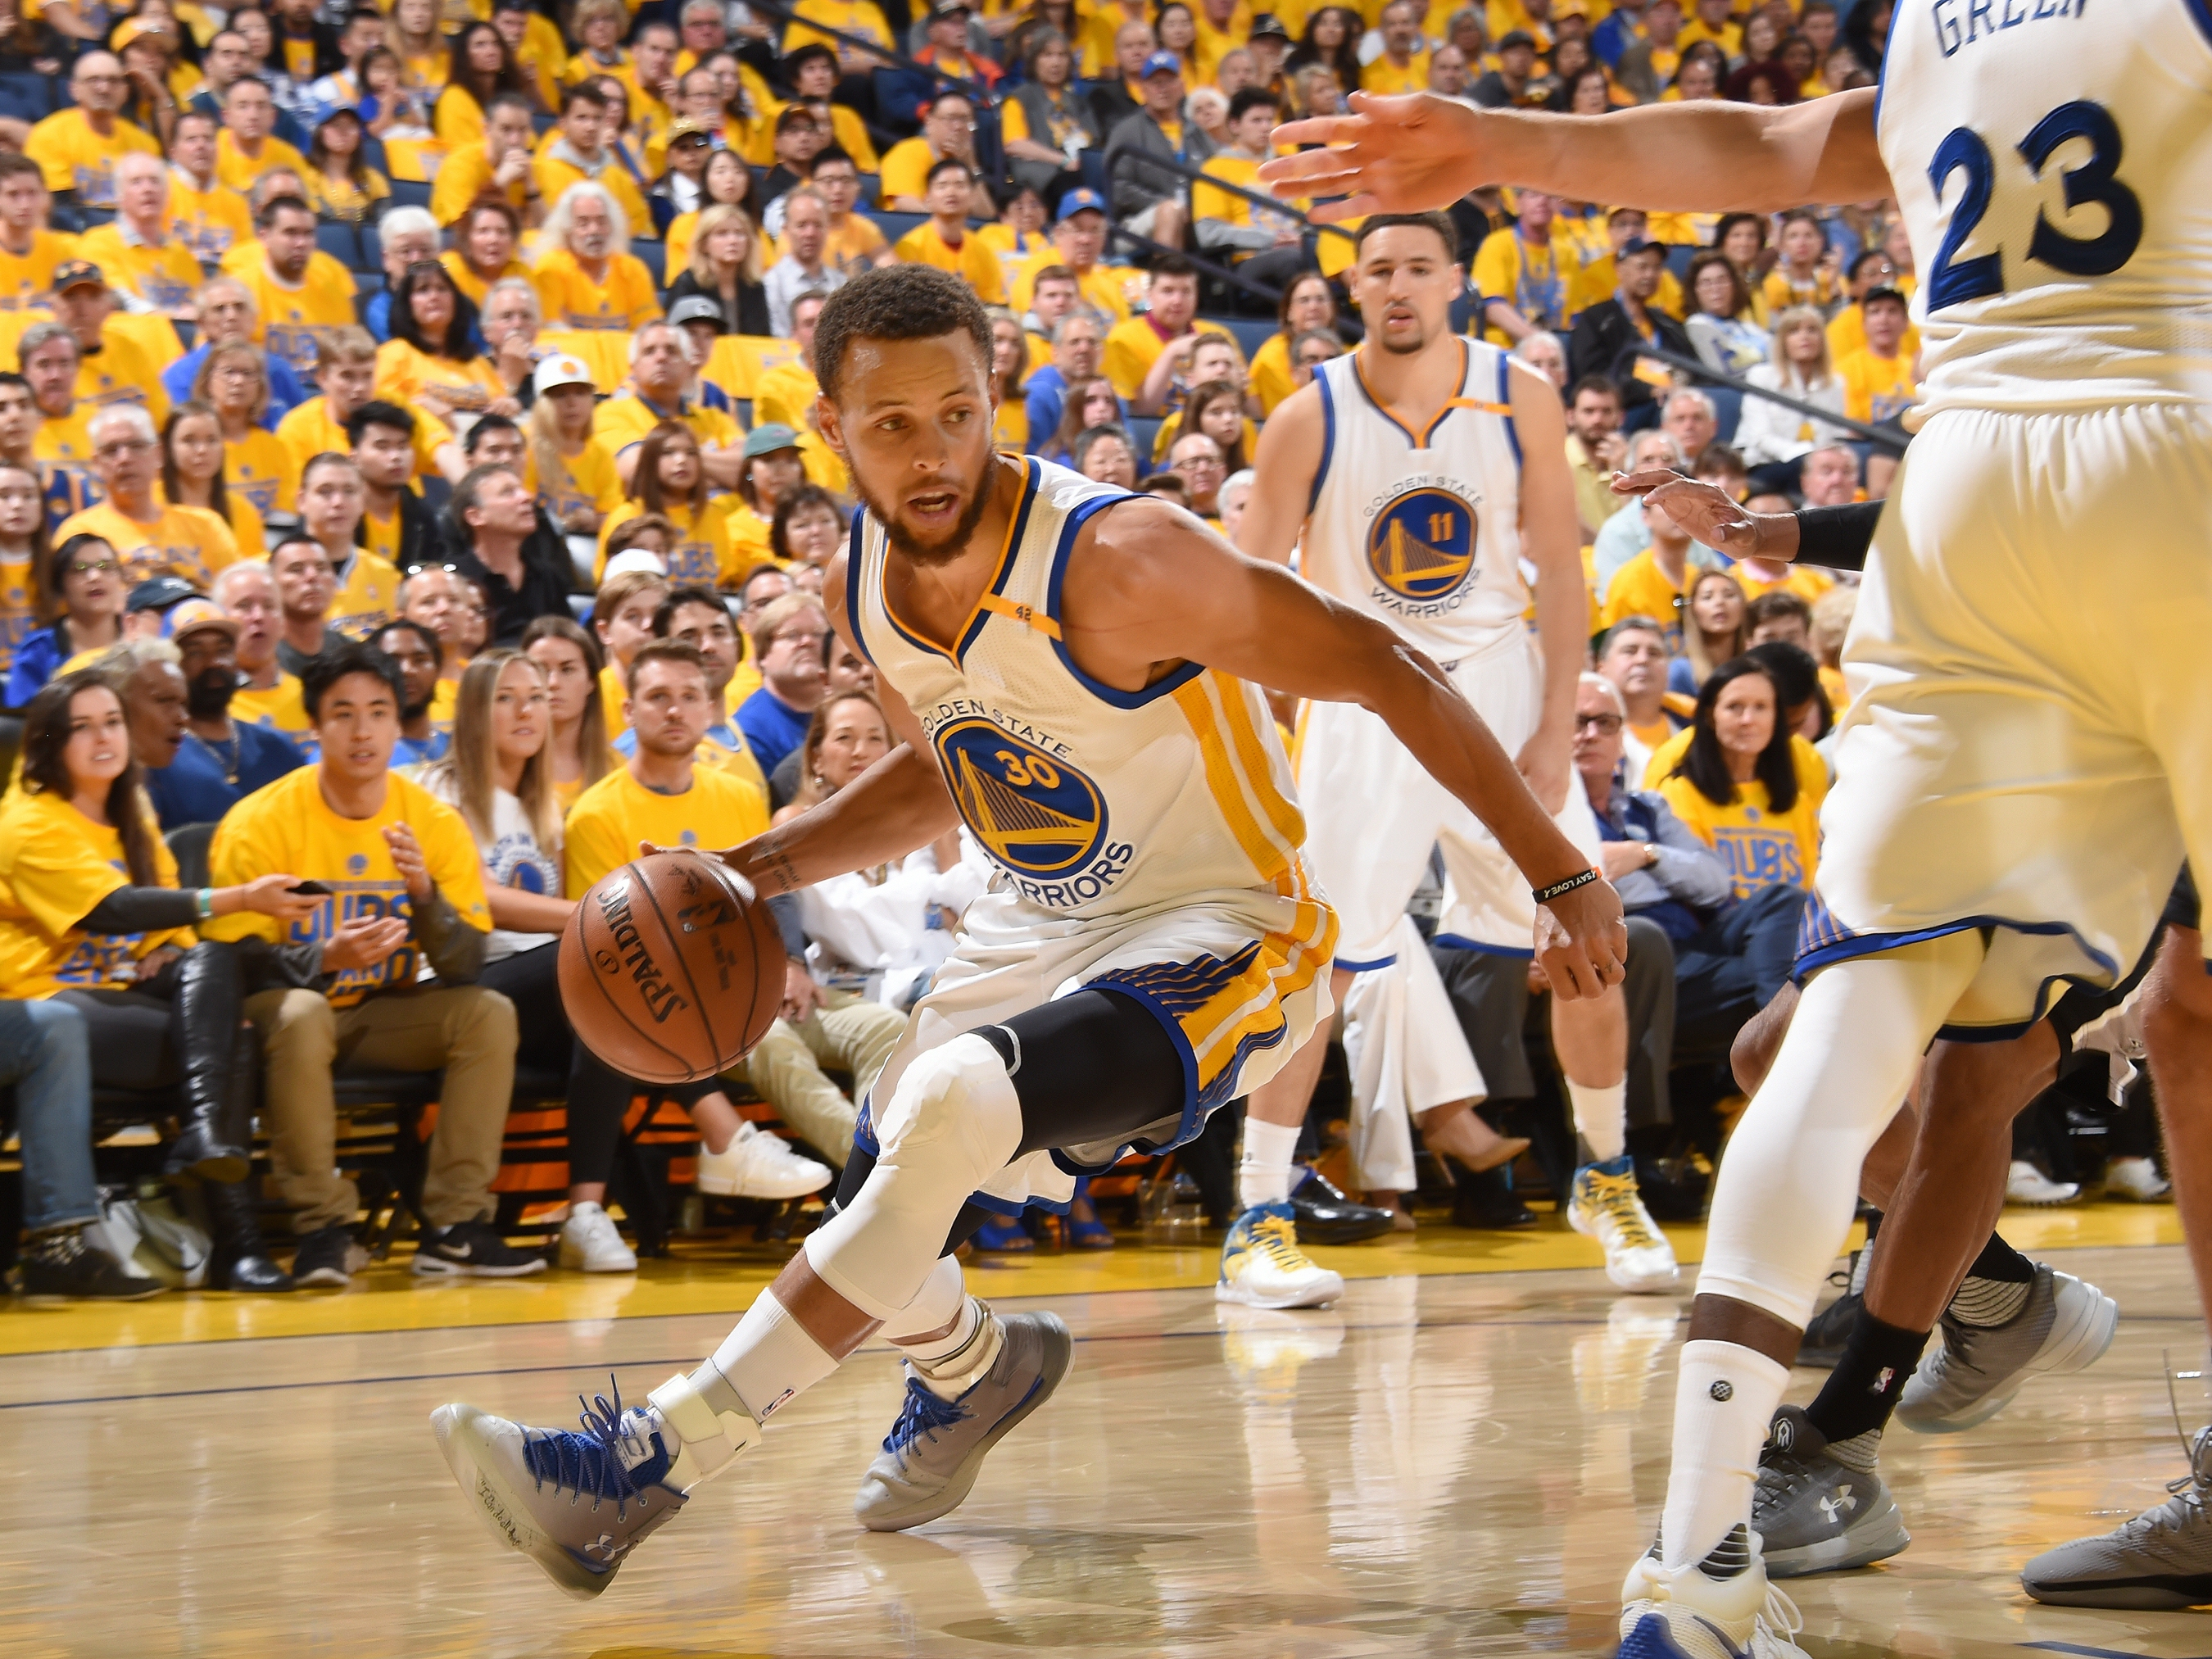 bd65bff3b94 The Beautiful Chaos Of The Warriors  Offense. Golden State s ...